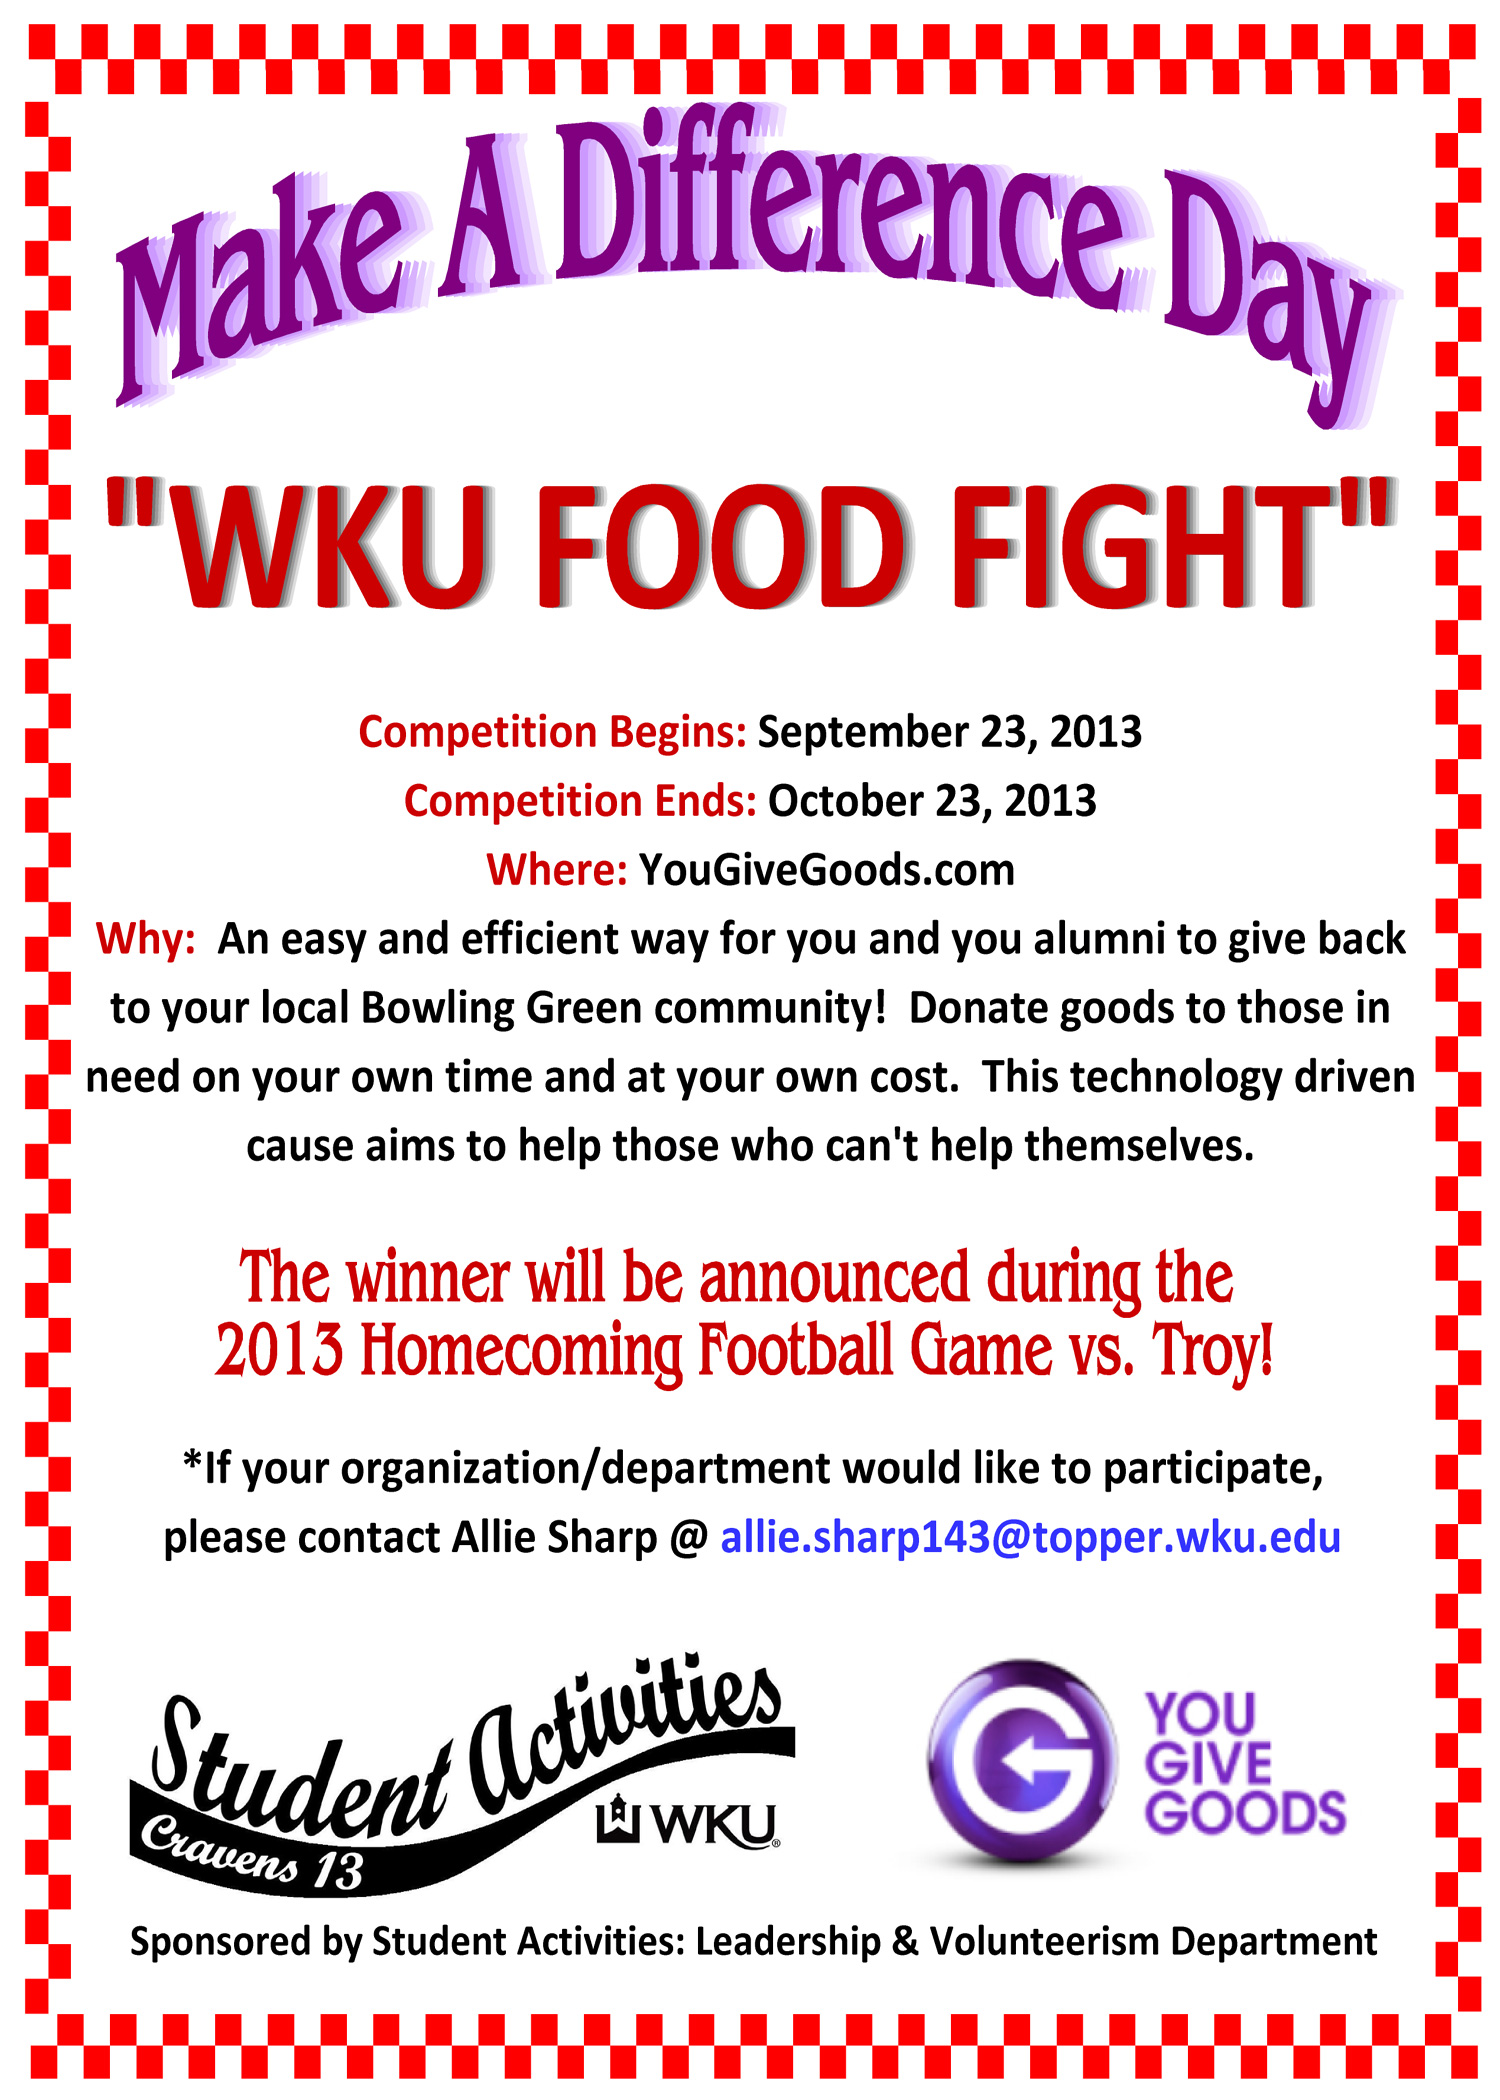 Food fight flyer